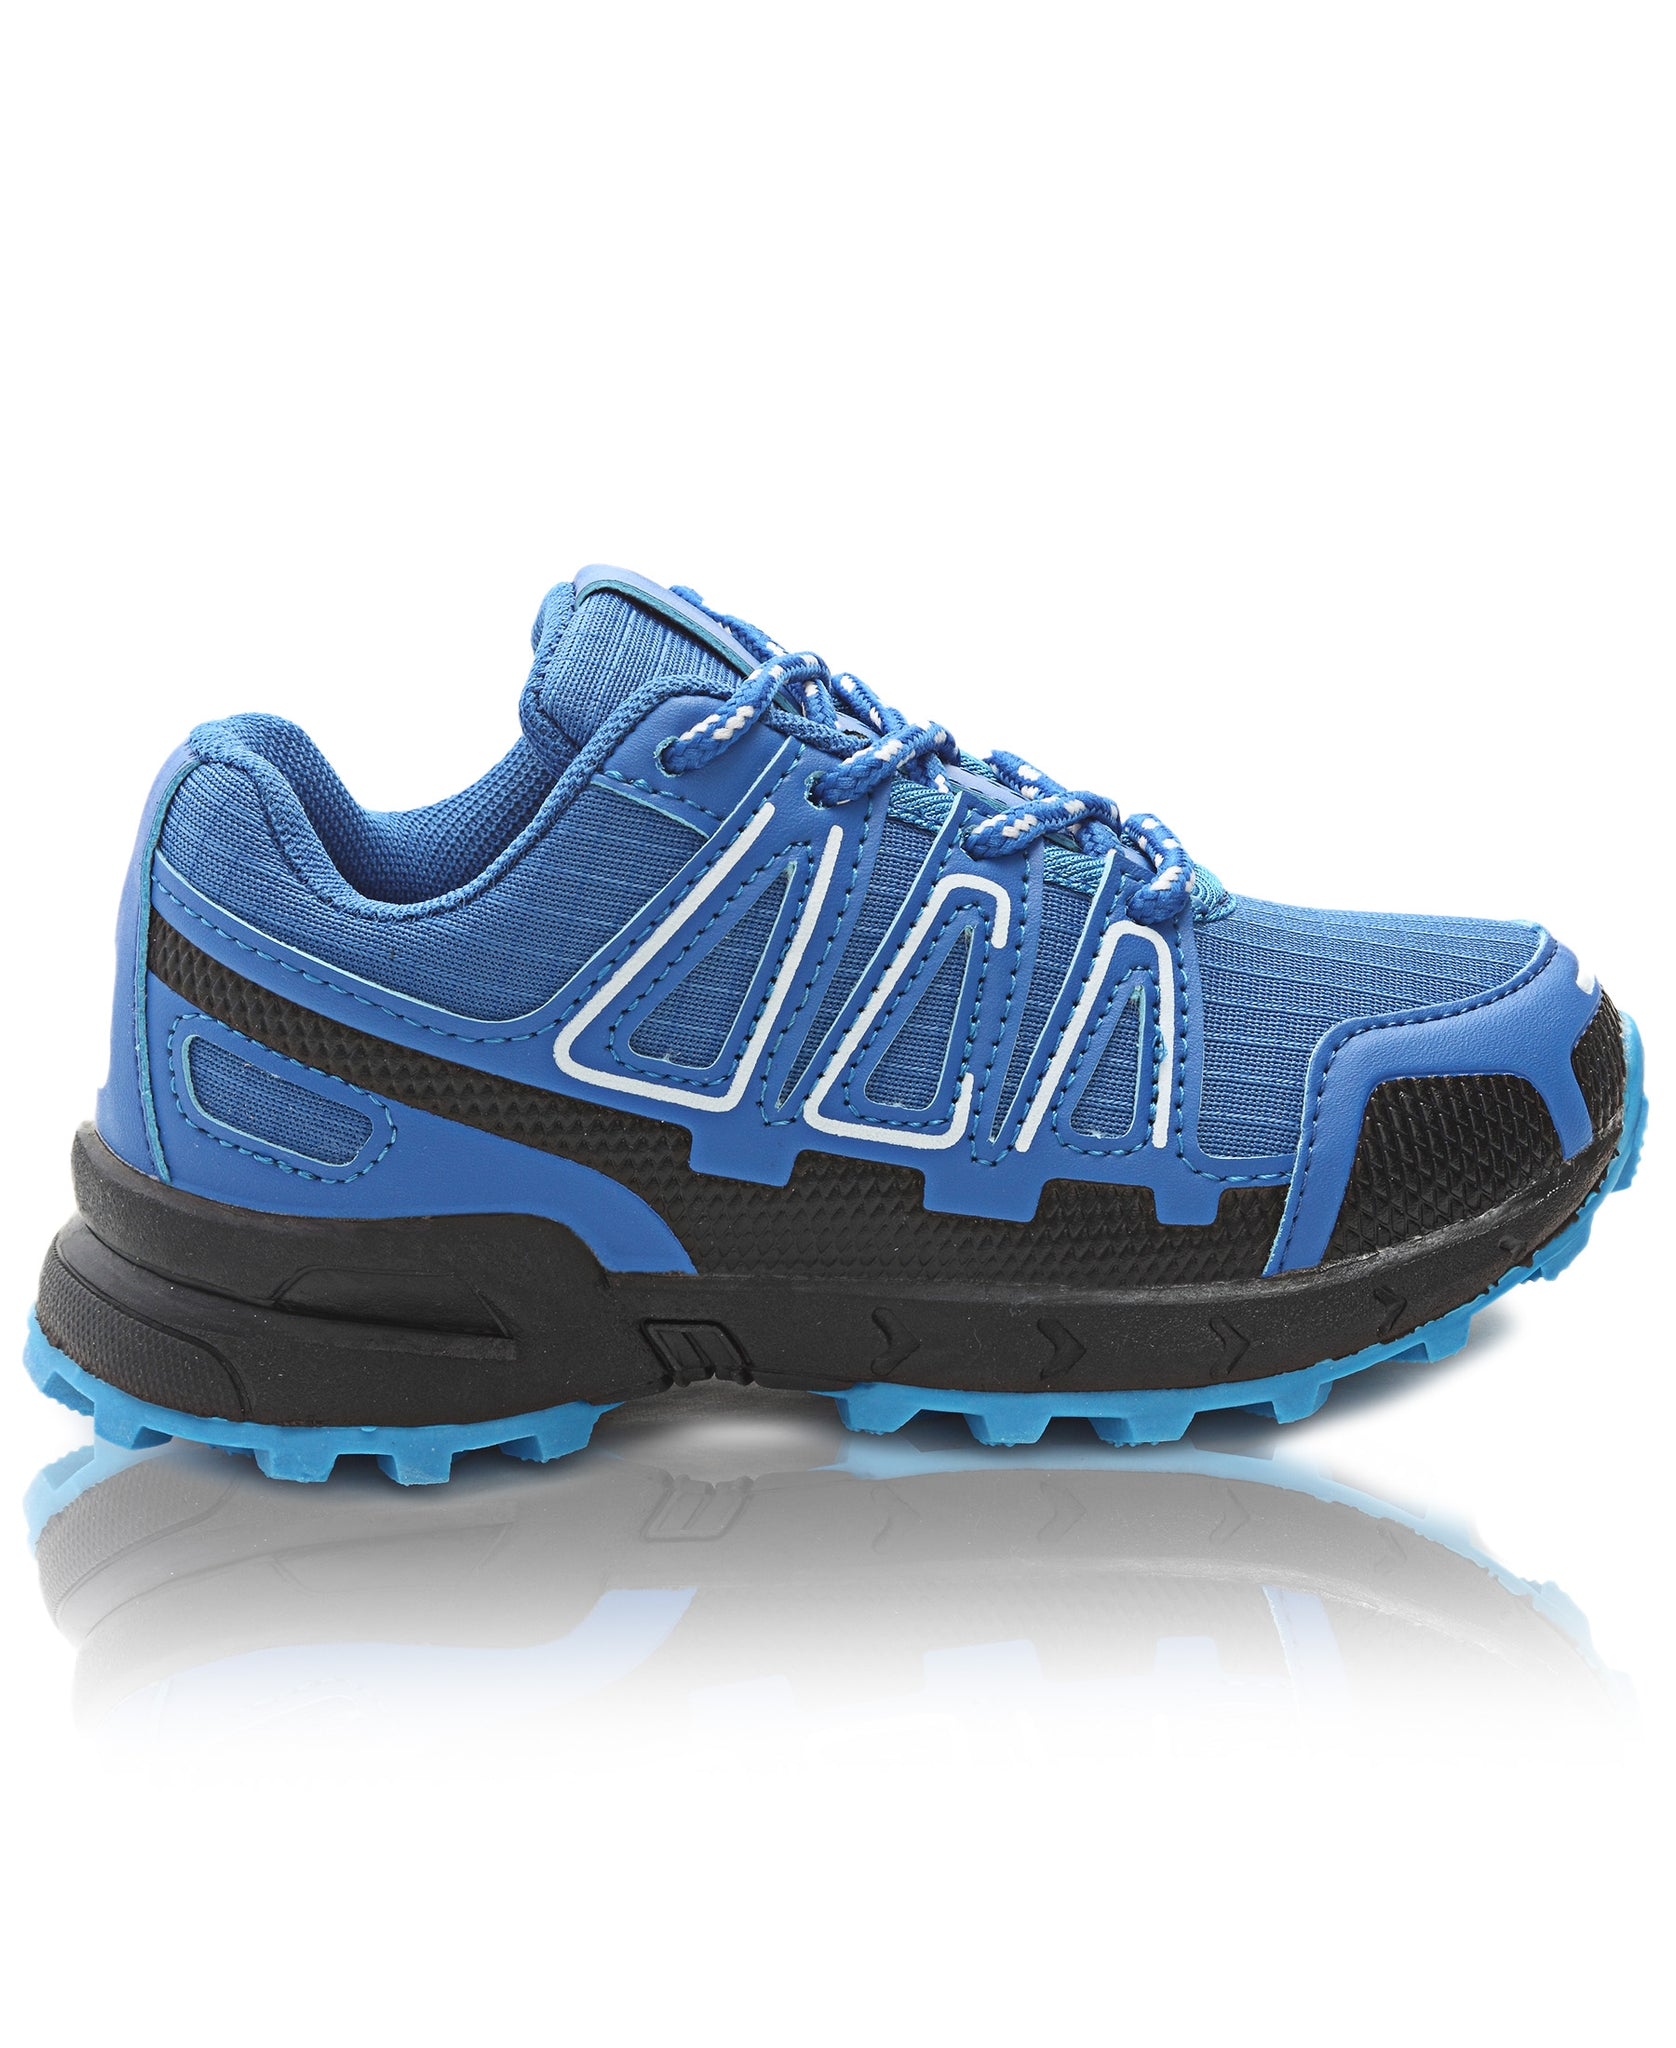 Kids Hiker Sneakers - Blue